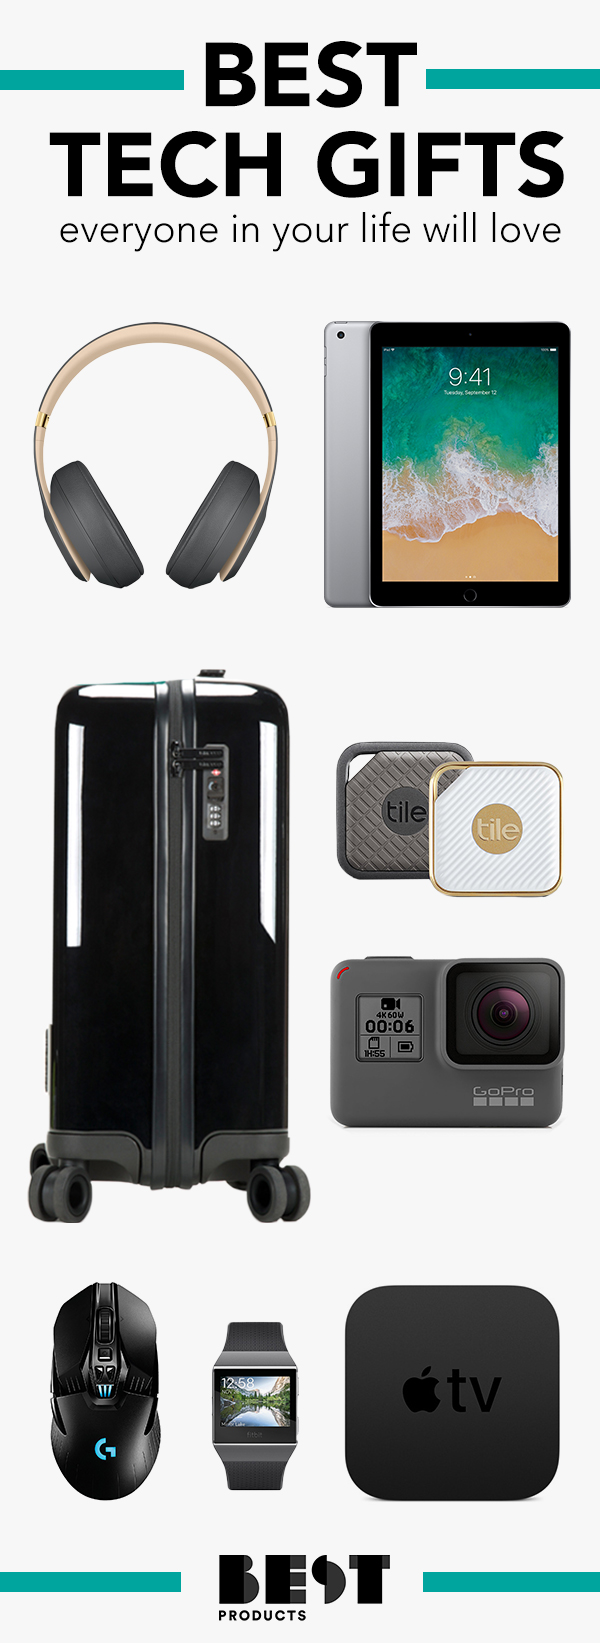 65 Best Tech Gifts for 2017 - Top Tech Gift Ideas for Gadget Lovers